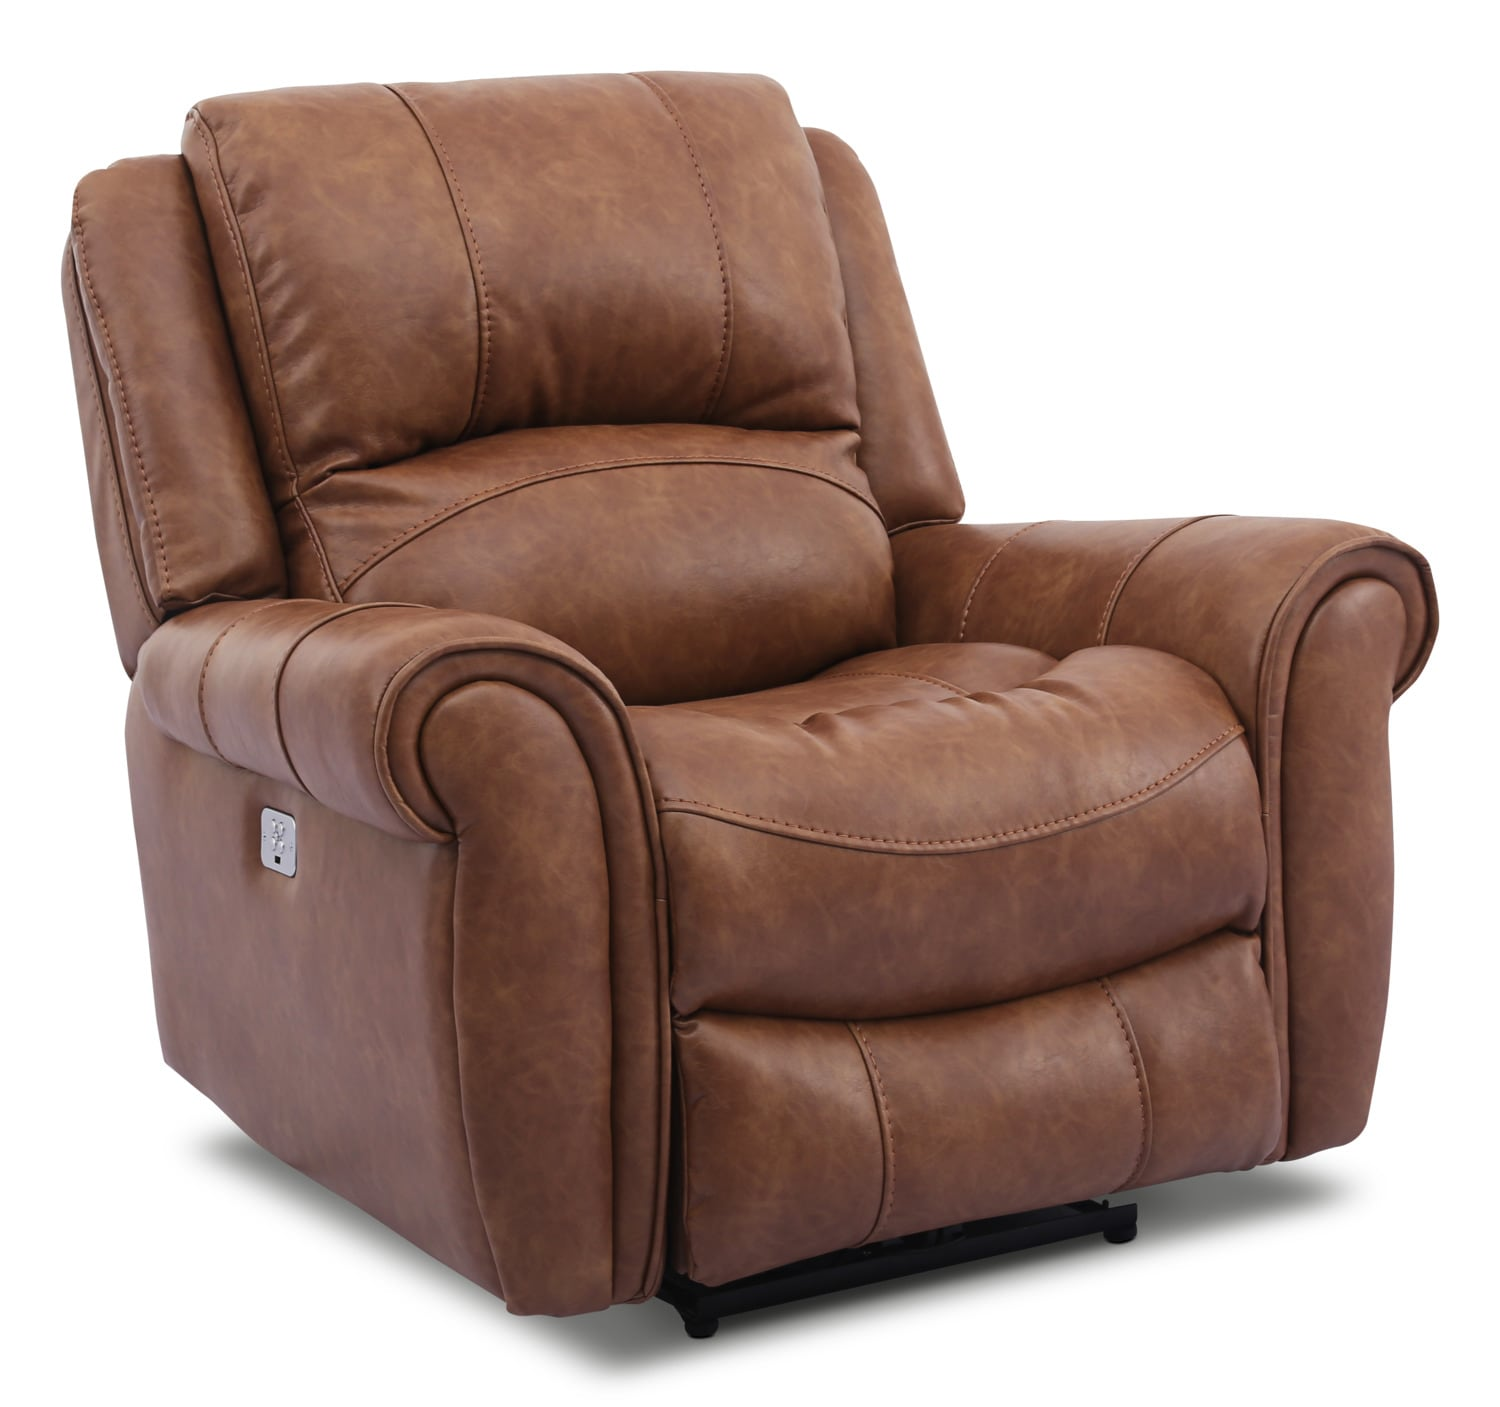 Living Room Furniture - Kane Leather-Look Fabric Power Reclining Chair – Saddle